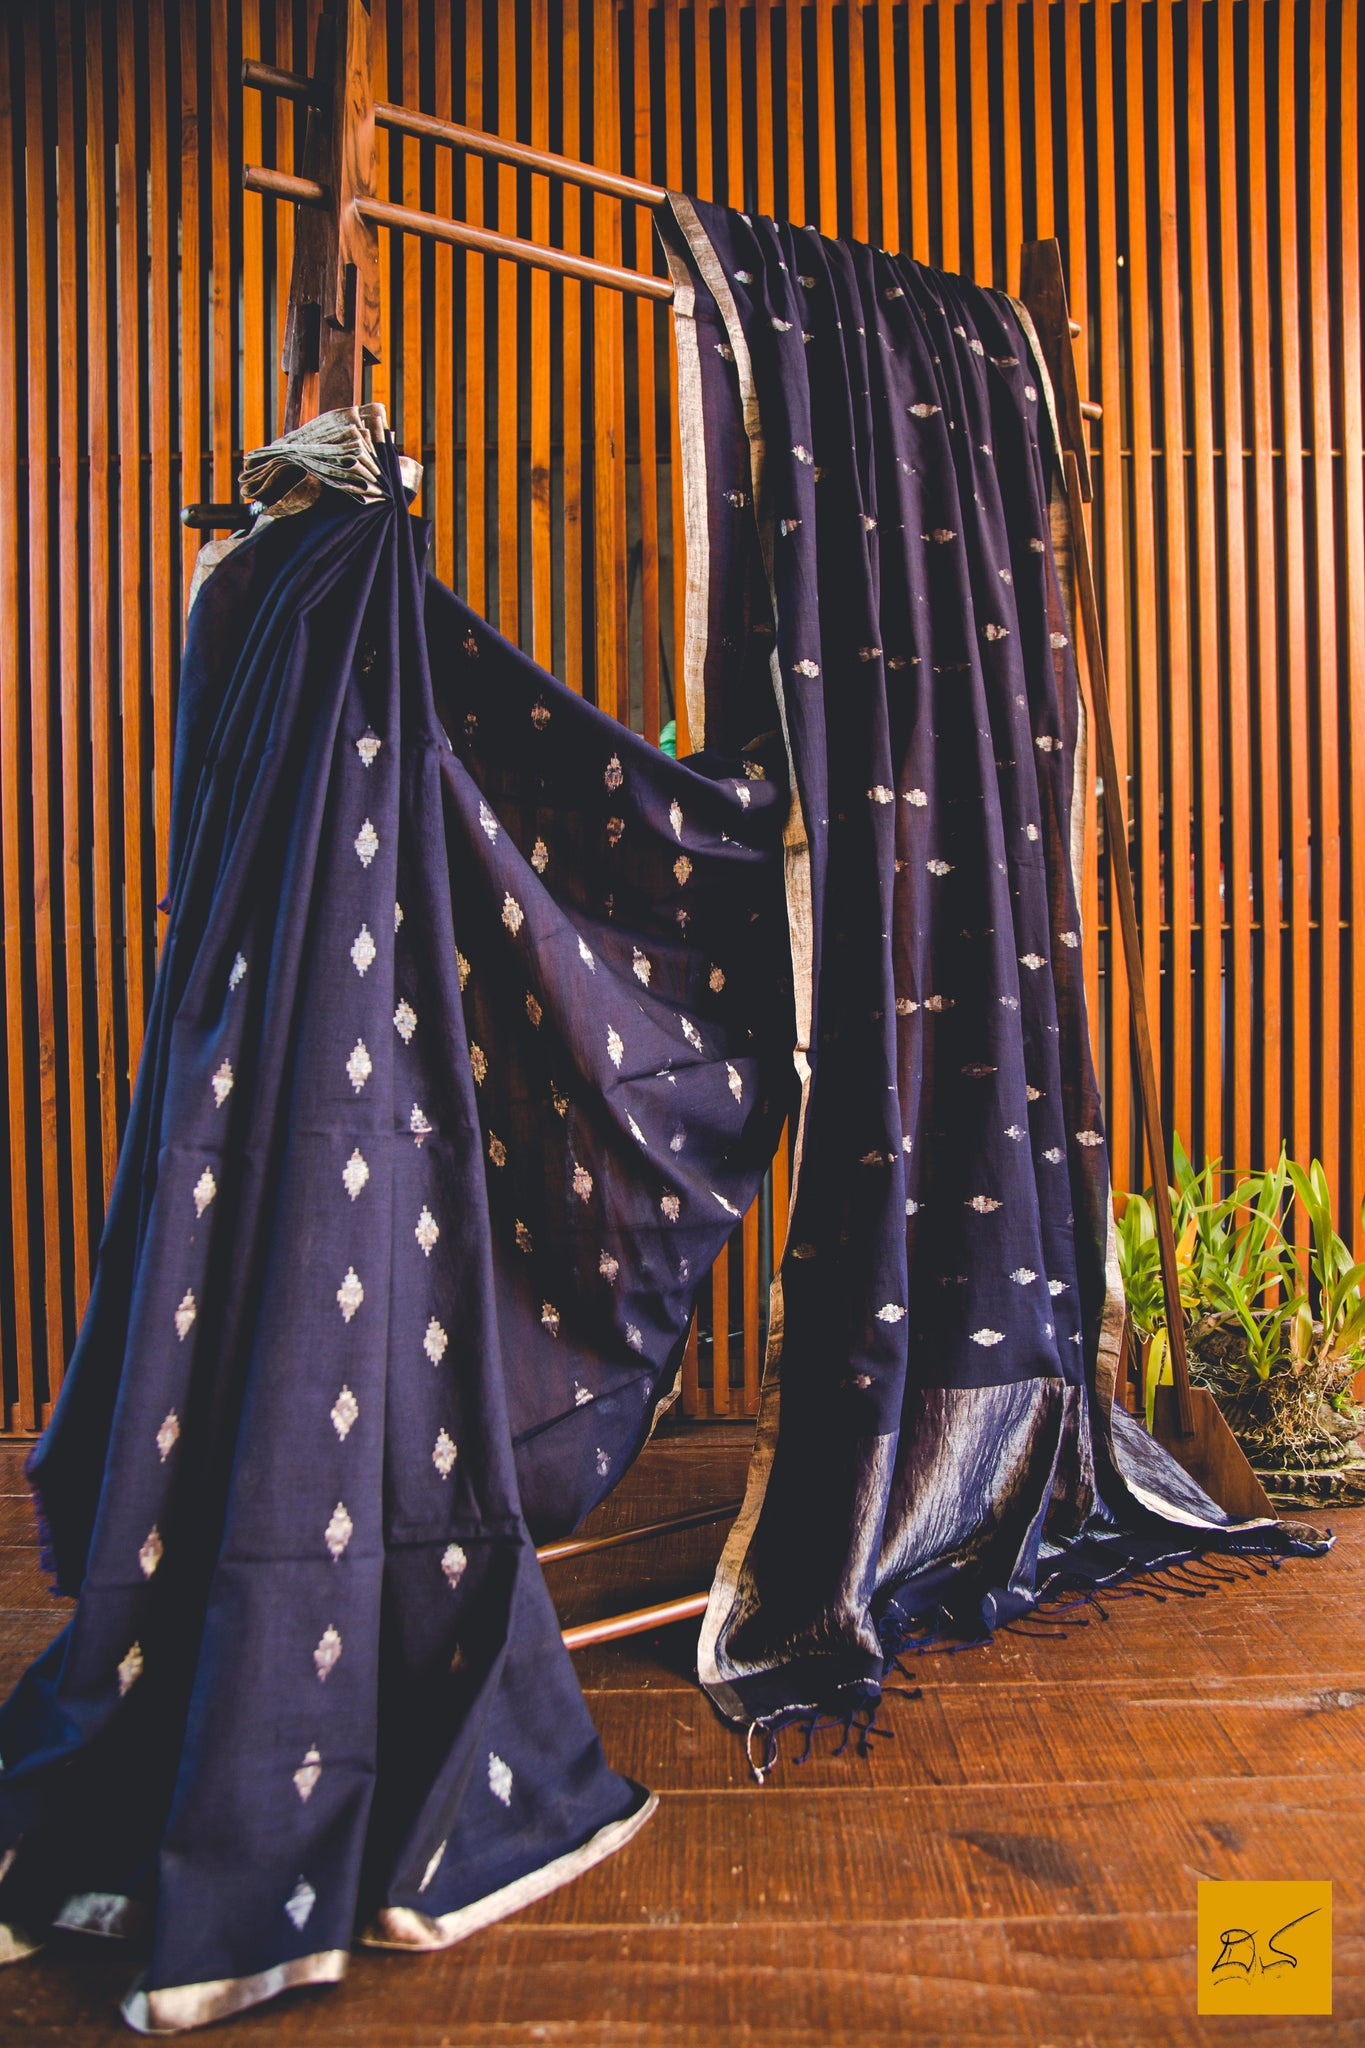 This is a magnificent Navy Blue Jamdani handwoven Saree. New trend of Muslin Jamdani Saree designs, Muslin Jamdani Saree for artists, art lovers, architects, saree lovers, Saree connoisseurs, musicians, dancers, doctors, Muslin Jamdani saree, indian saree images, latest sarees with price, only saree images, new Muslin Jamdani saree design.